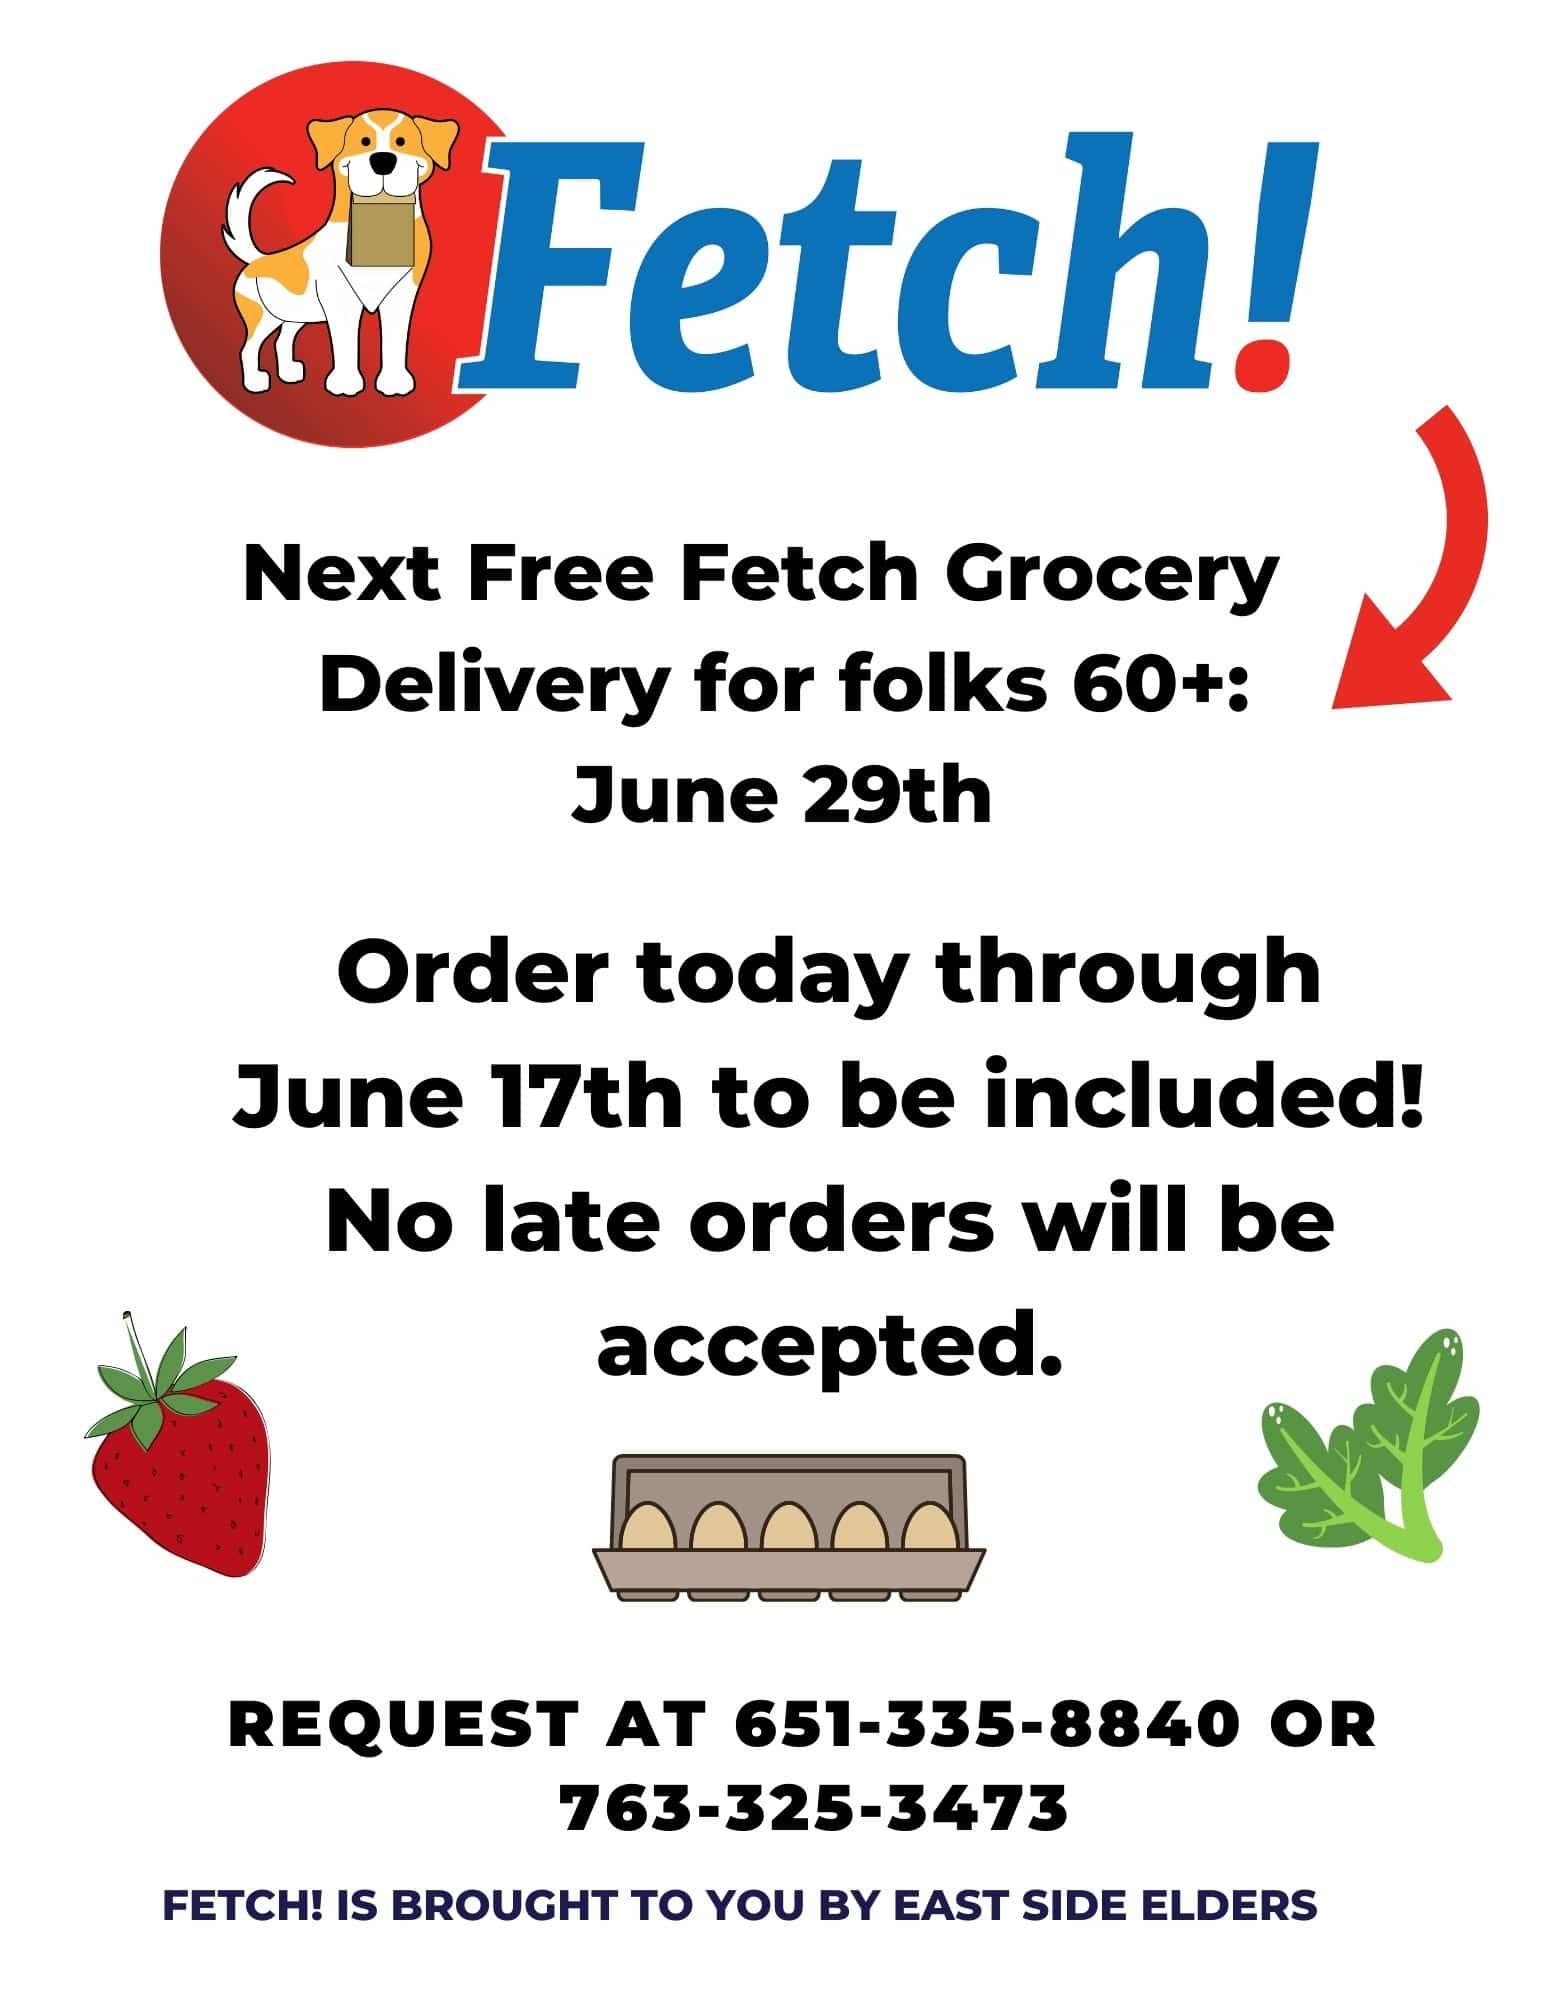 Flier for free groceries for seniors on June 29th. Fetch logo includes a yellow and white dog on a red background, holding a paper bag. For more information about Fetch, call East Side Elders at 763-325-3473.  Flier also includes illustrative images of a strawberry, eggs, and leafy greens.